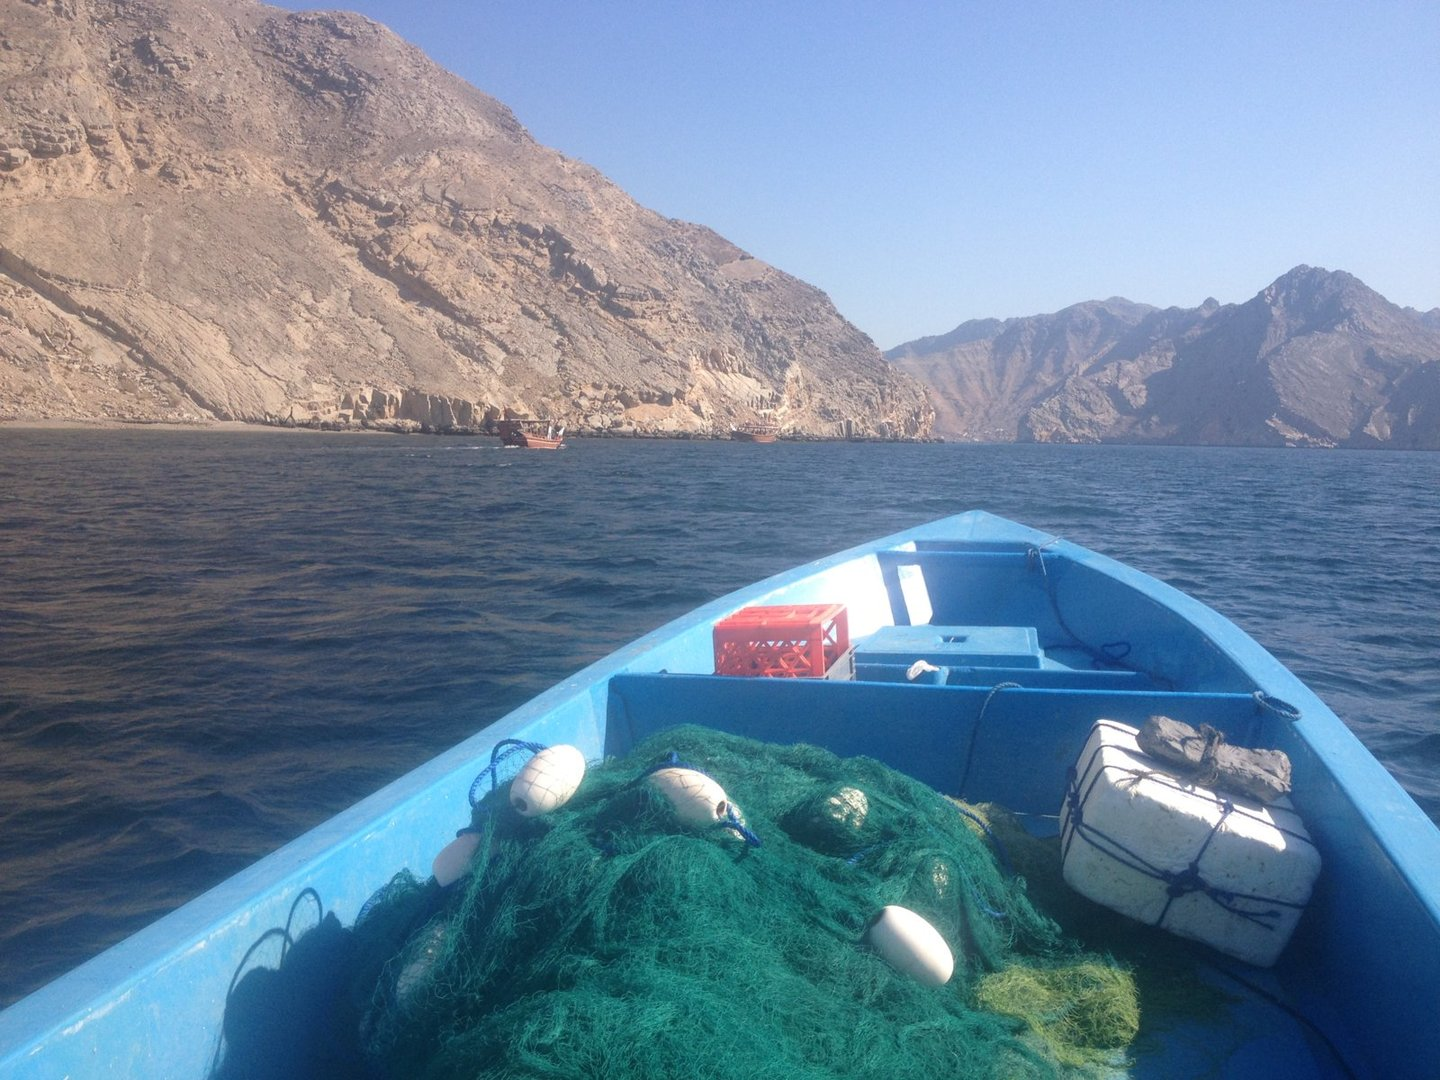 img_0811-jpg.41308_Hitching boats in the Strait of Hormuz   Expat squatters of Oman_Travel Stories_Squat the Planet_12:38 PM